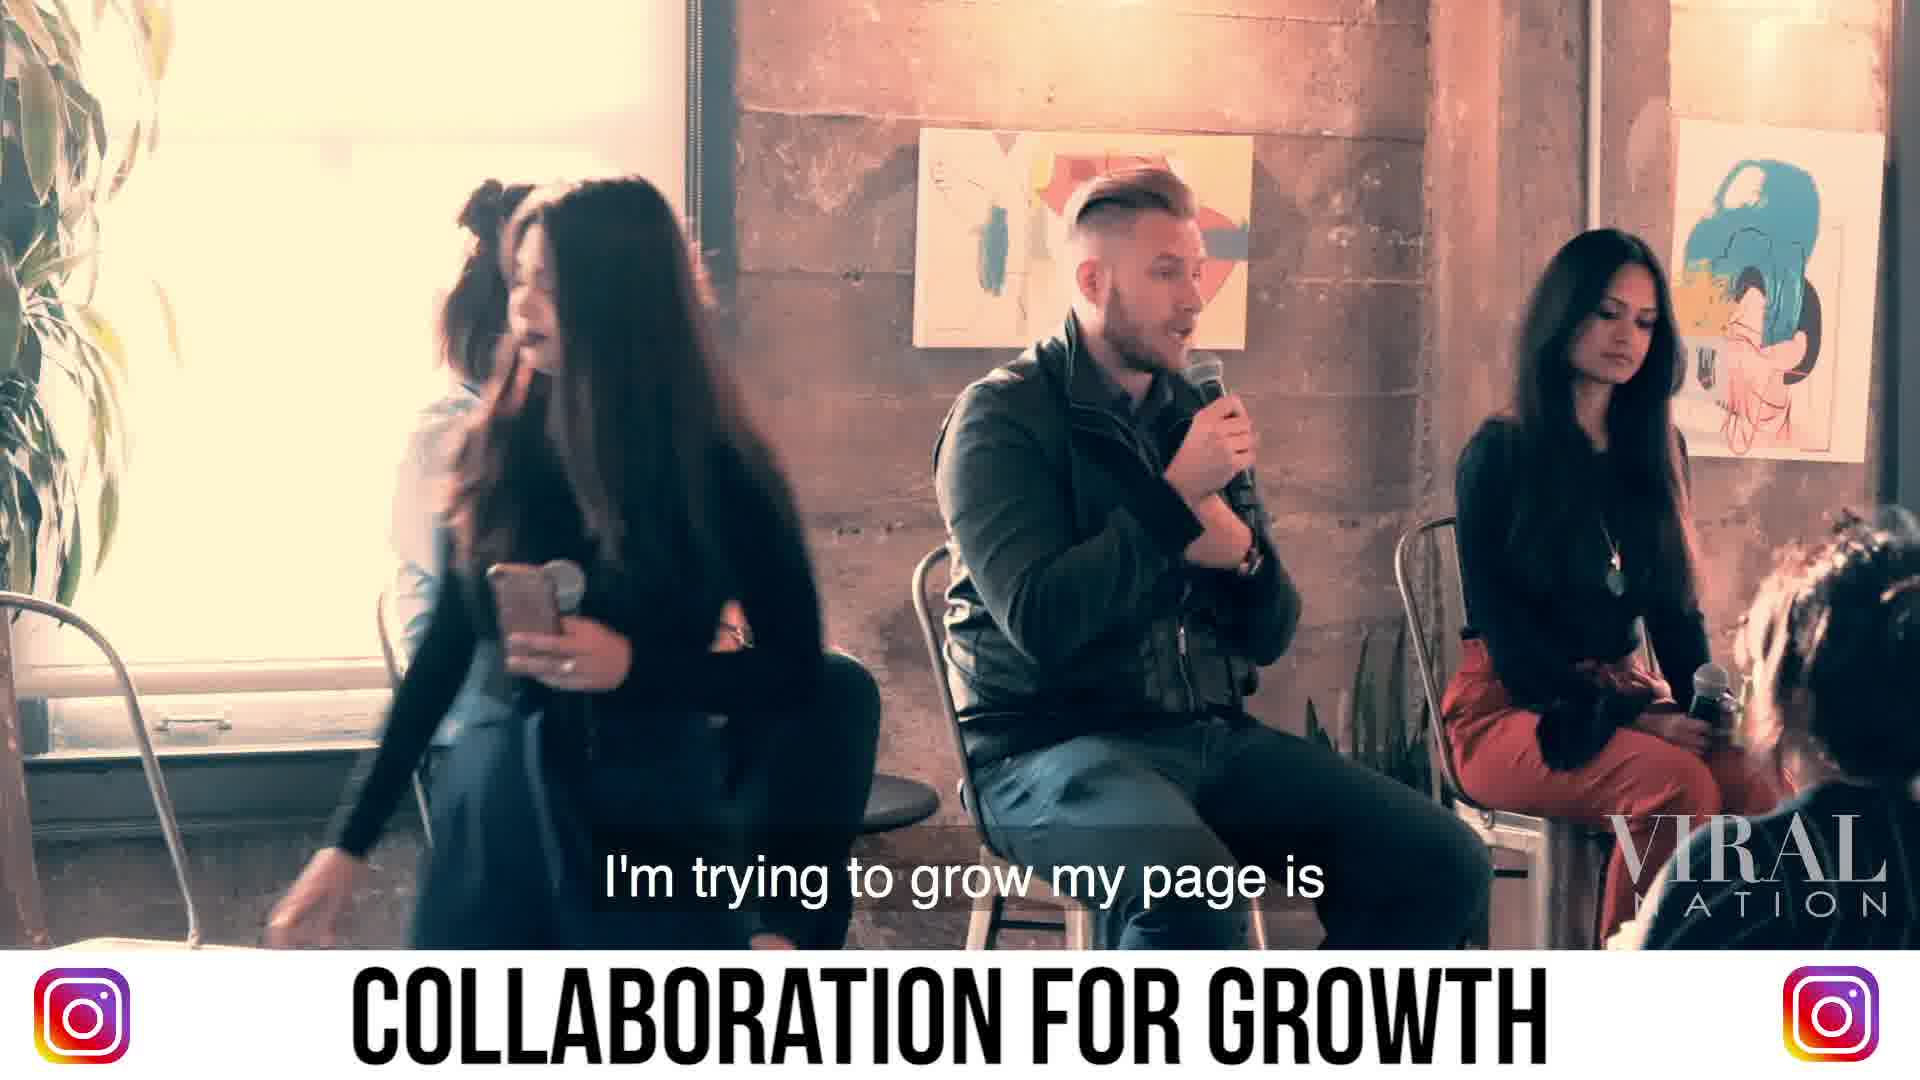 Collaboration for Growth